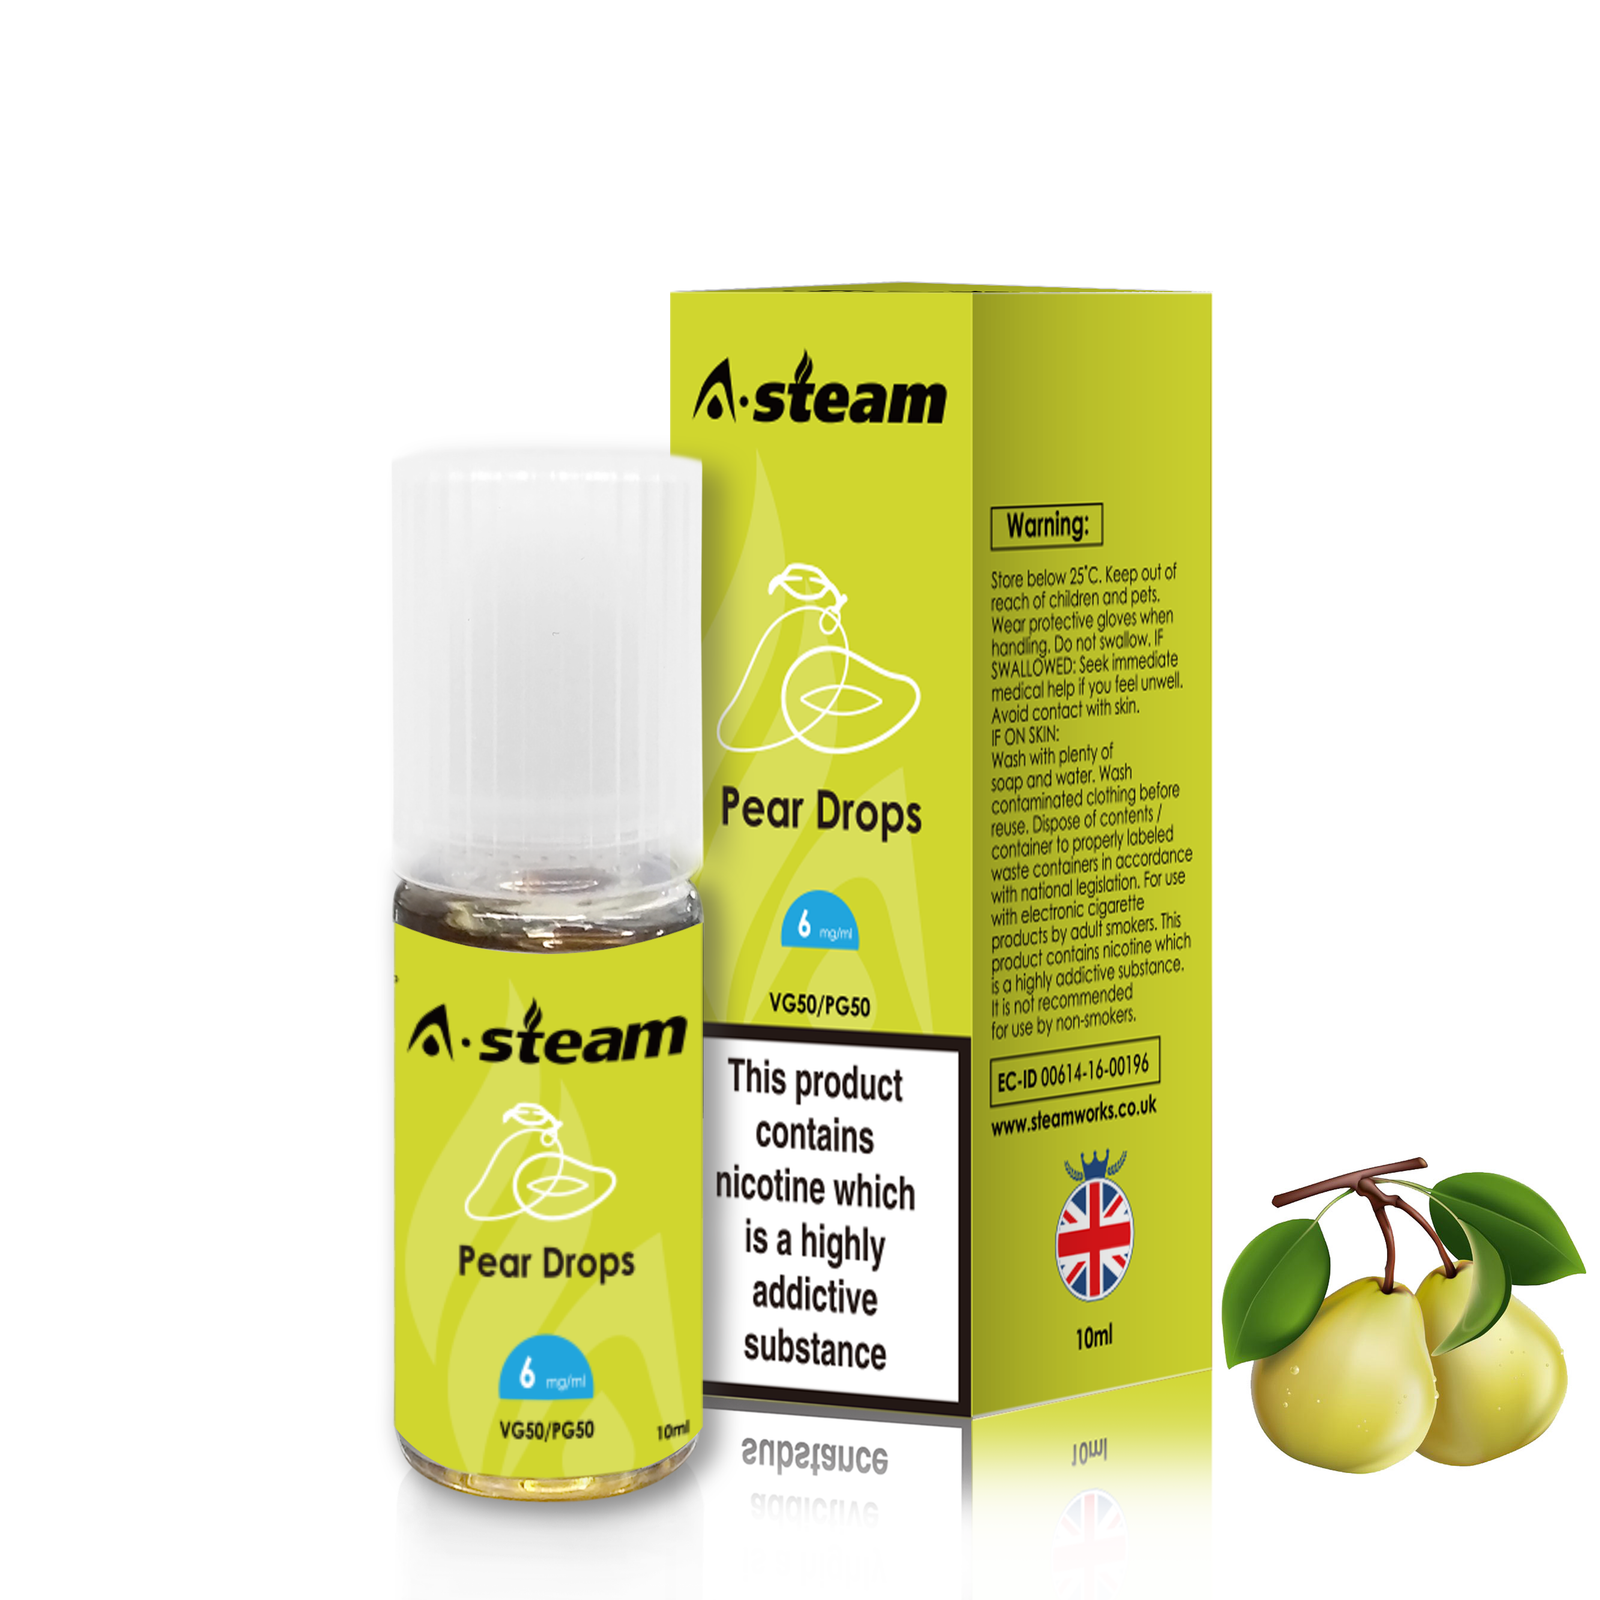 A-STEAM Pear Drops